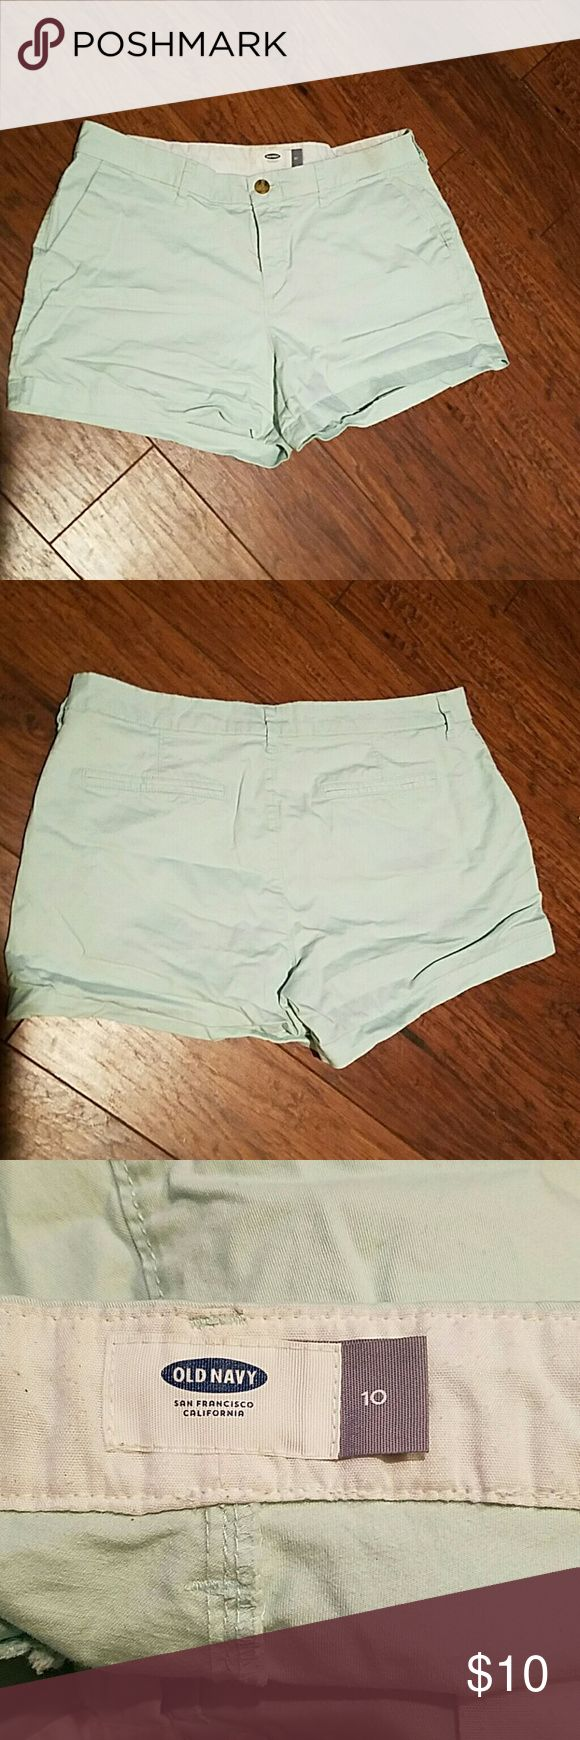 Old Navy Mint Shorts Old Navy Mint shorts. Size 10. Old Navy Shorts